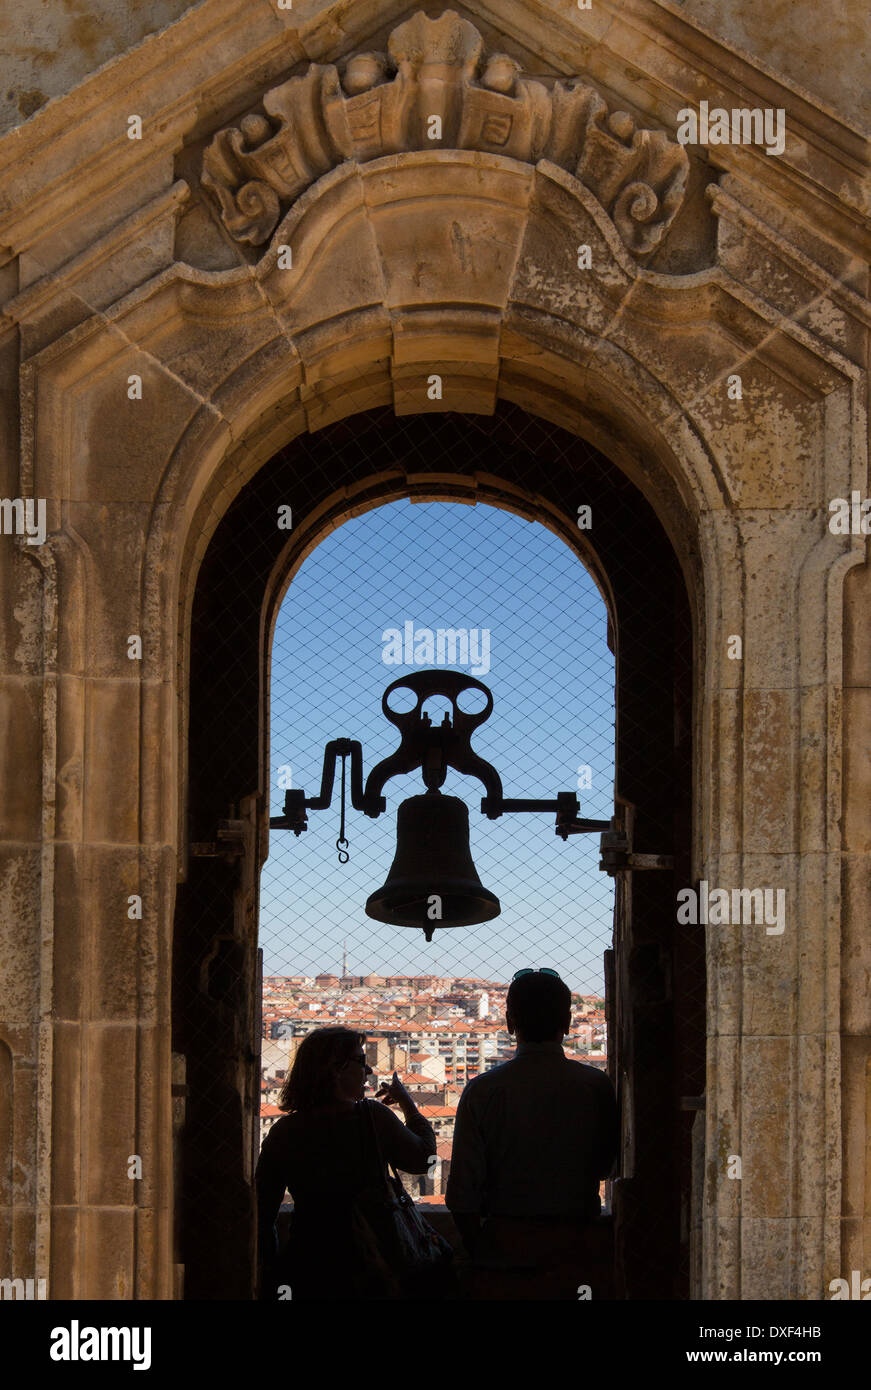 Tourists in the bell tower of the Universidad in the city of Salamanca in the Castilla-y-Leon region of Spain. - Stock Image